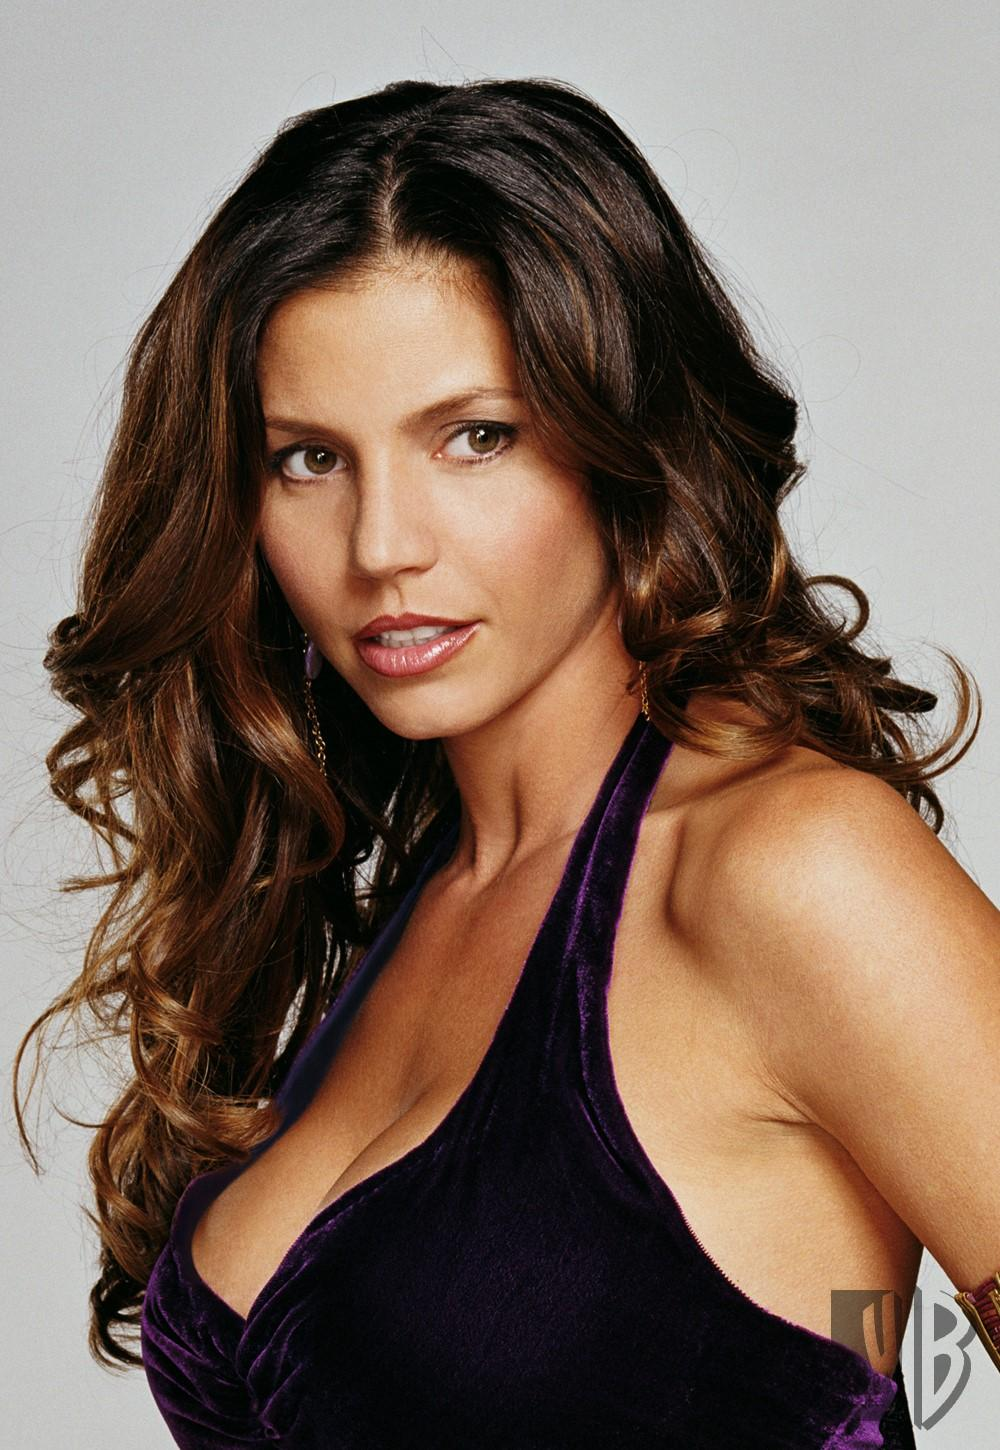 Photos Charisma Carpenter nude (88 photos), Sexy, Bikini, Twitter, braless 2018